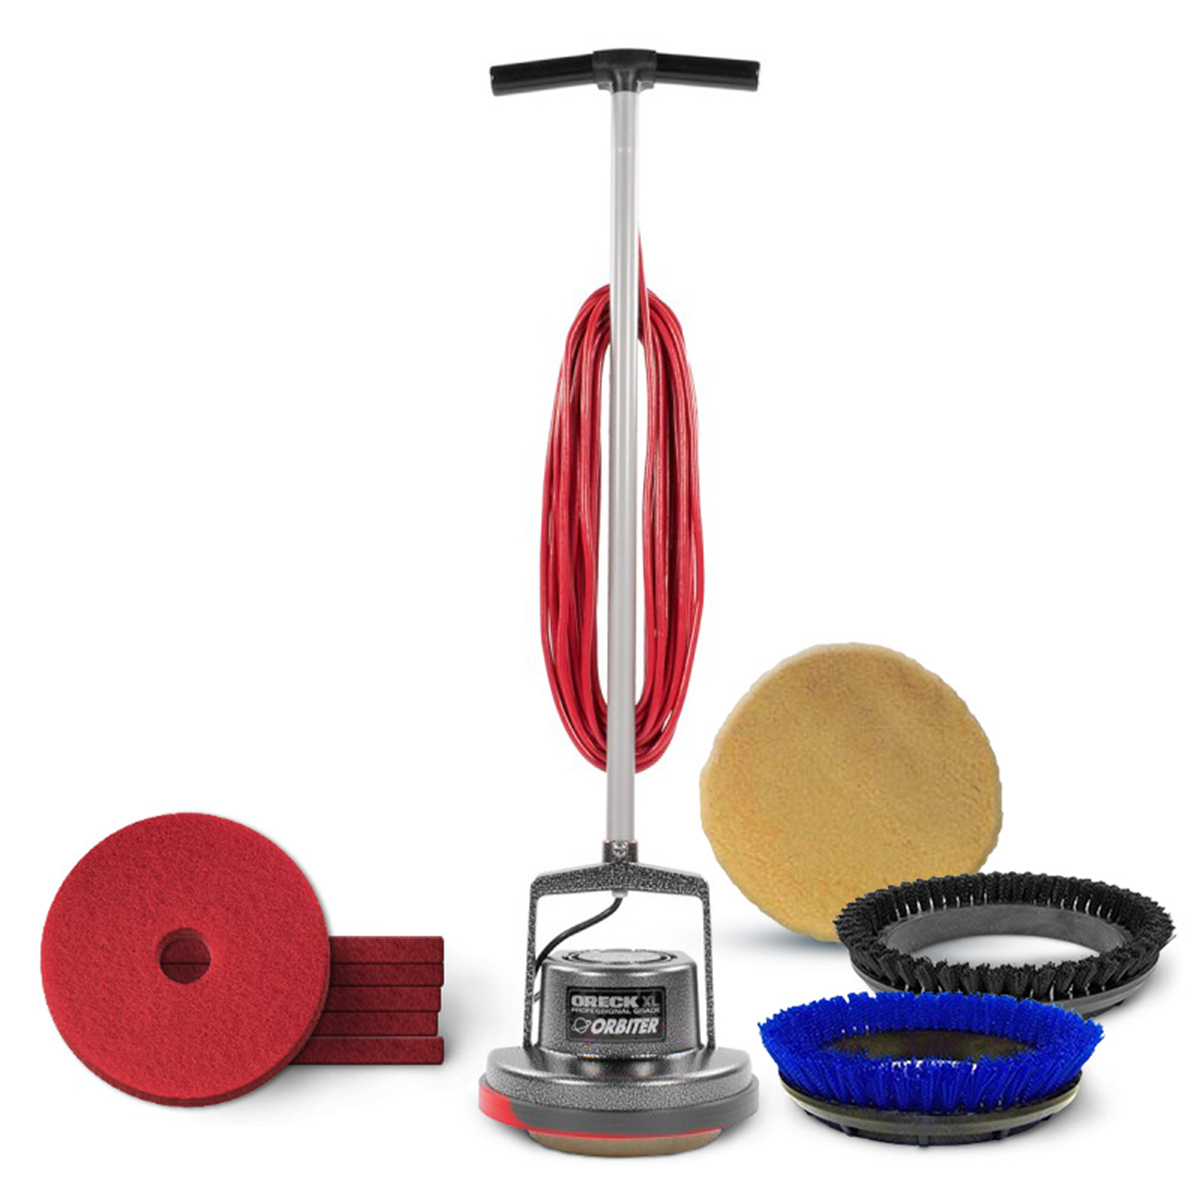 Oreck® Orbiter® Floor U0026 Carpet Cleaning Package (includes Brushes, Pads U0026  Bonnets)